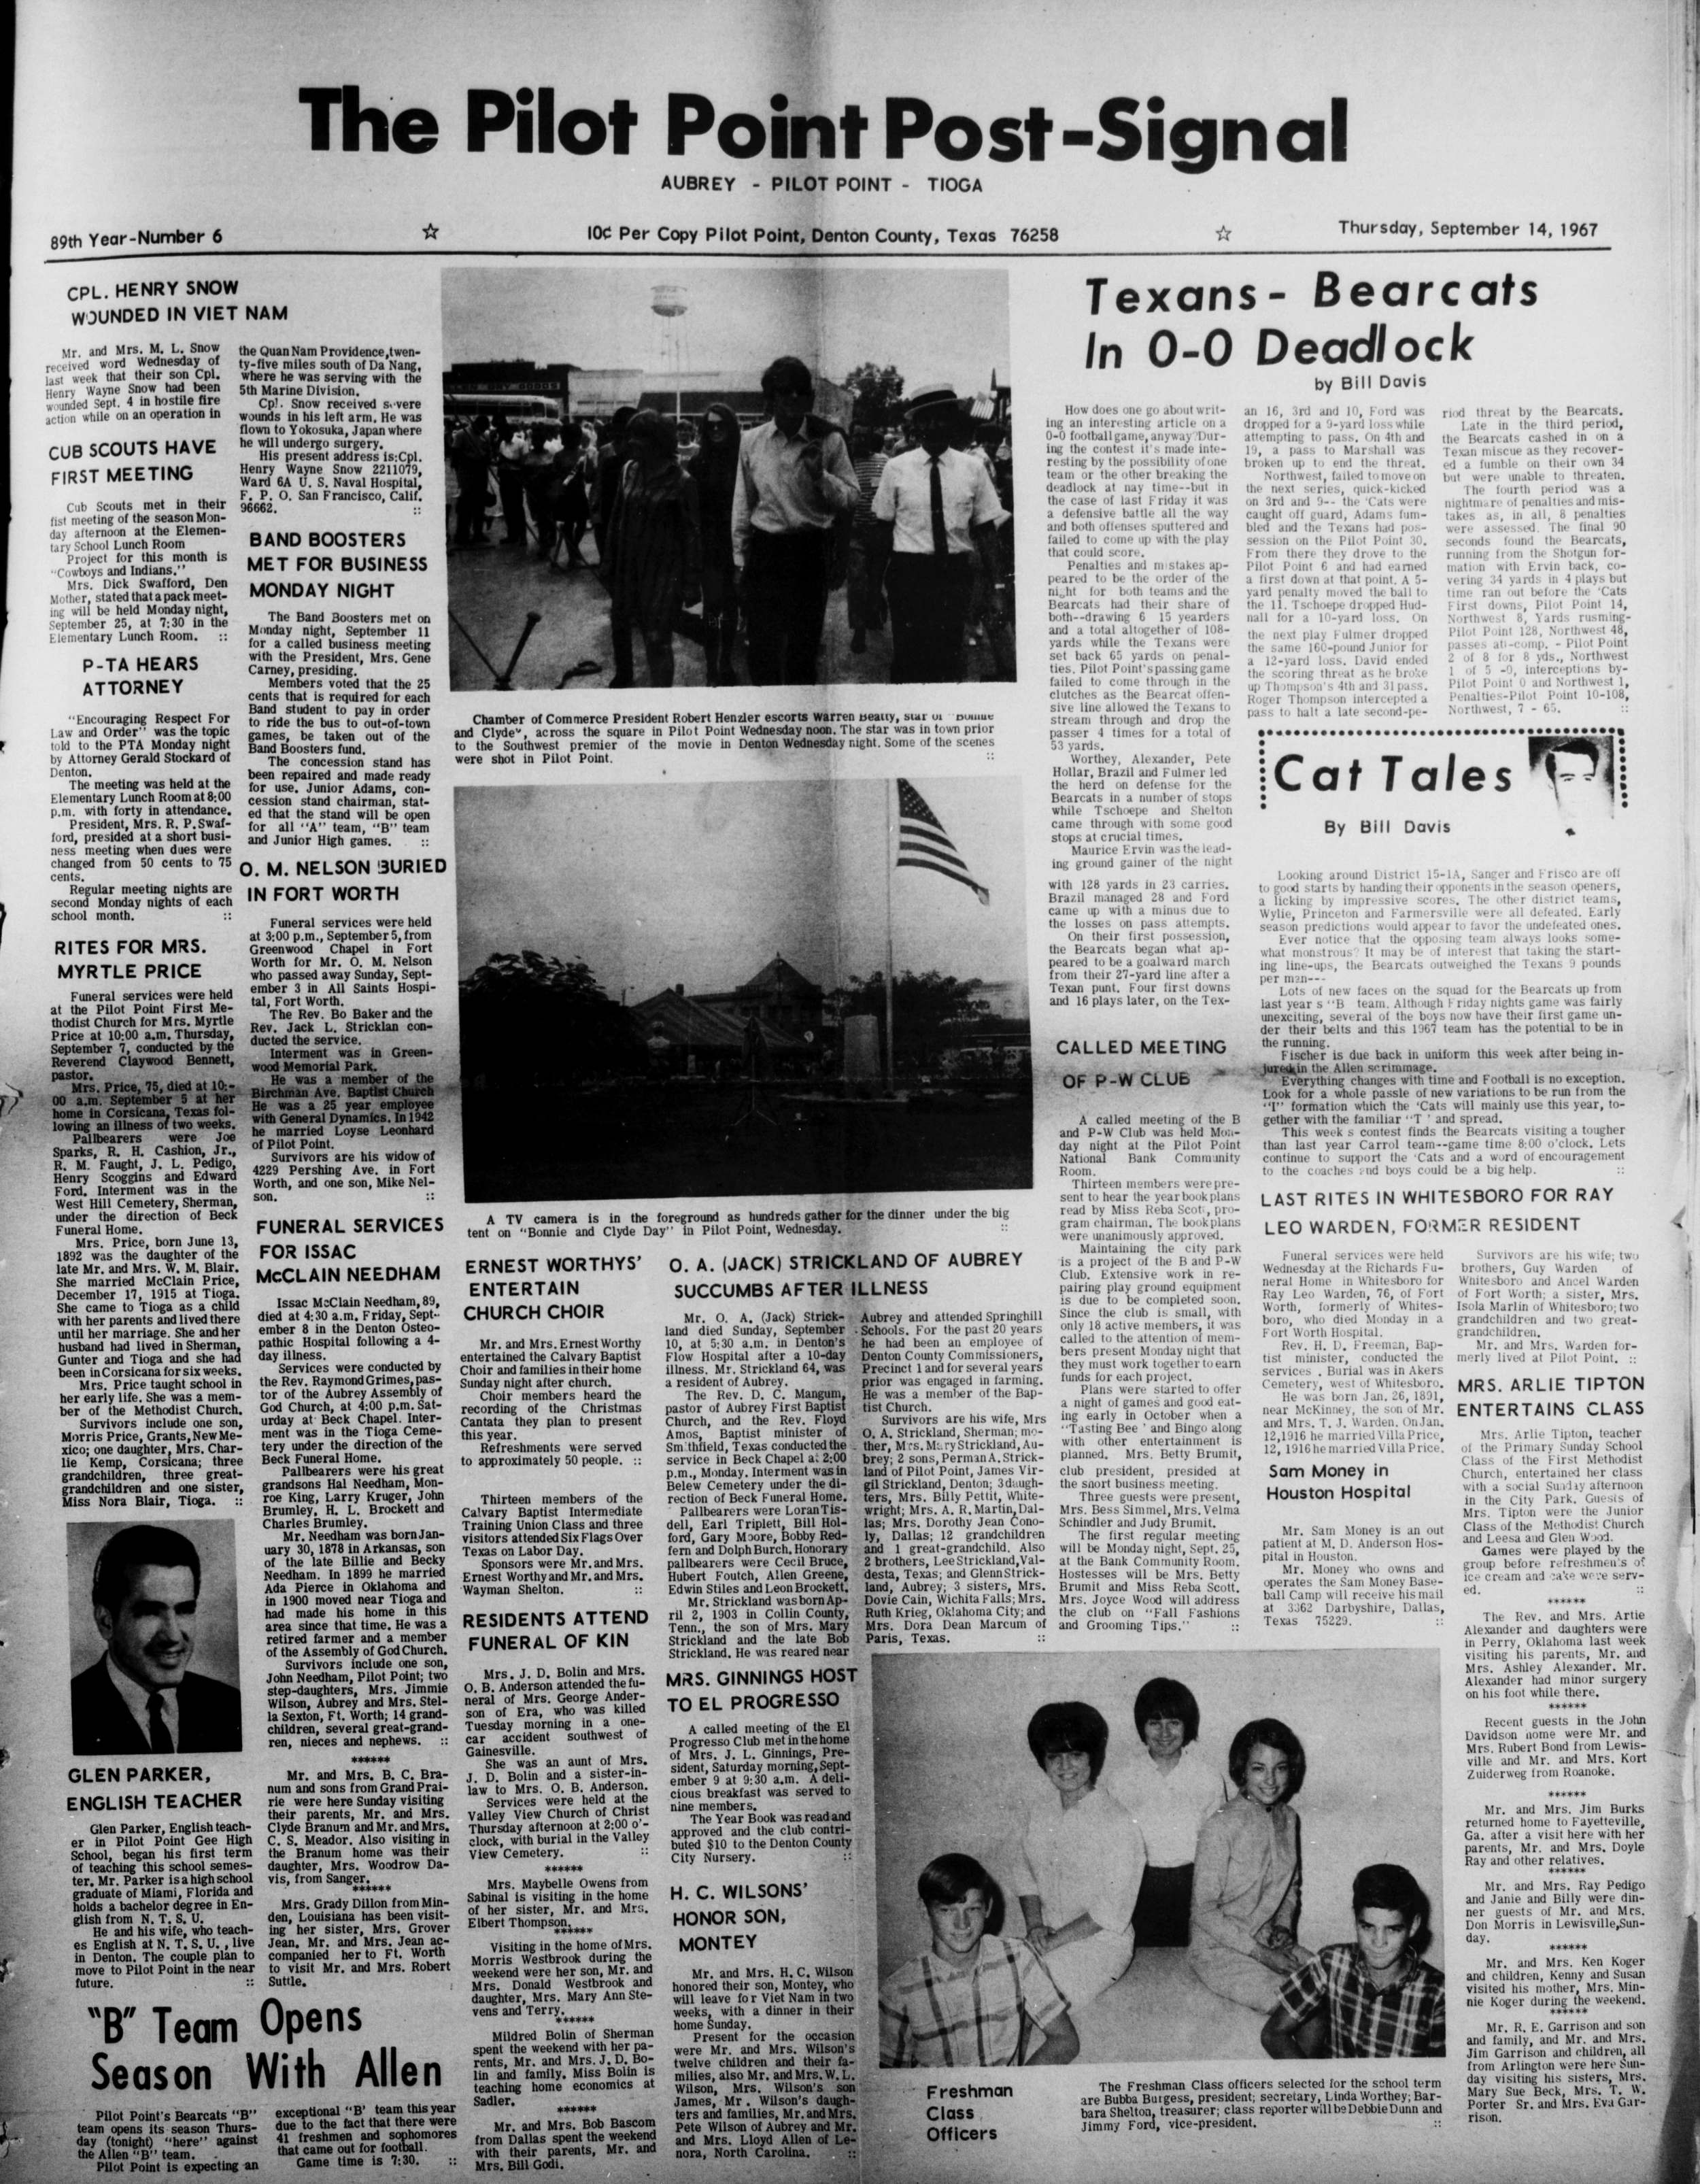 Photographs of Premiere Events in Pilot Point (September 14, 1967)